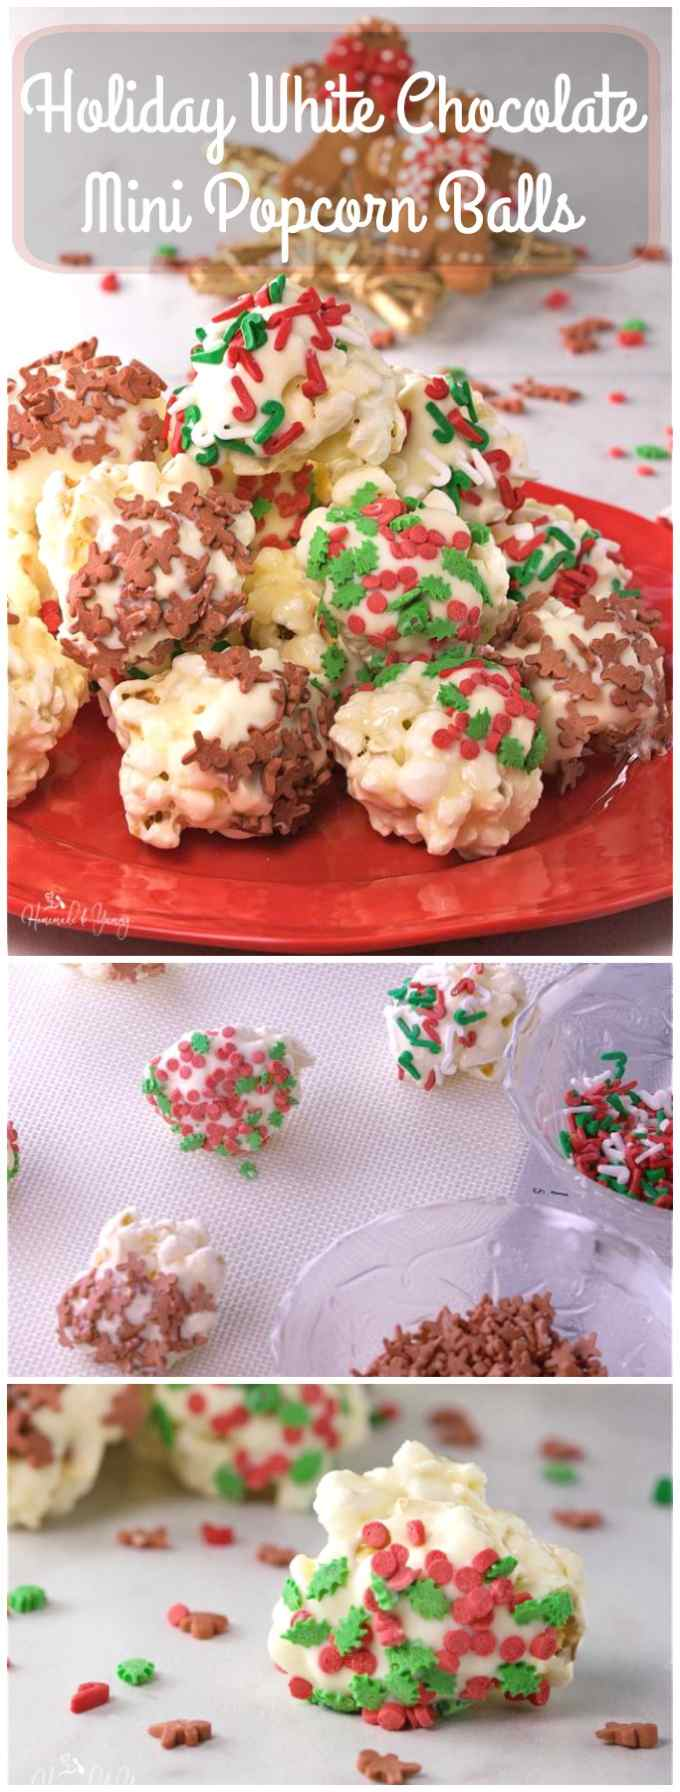 Holiday White Chocolate Mini Popcorn Balls are the perfect addition to any cookie tray. Bite size balls of popcorn, dipped in white chocolate, and decorated with holiday sprinkles. An easy no bake, gluten free treat that makes an awesome food gift too.|homemadeandyummy.com